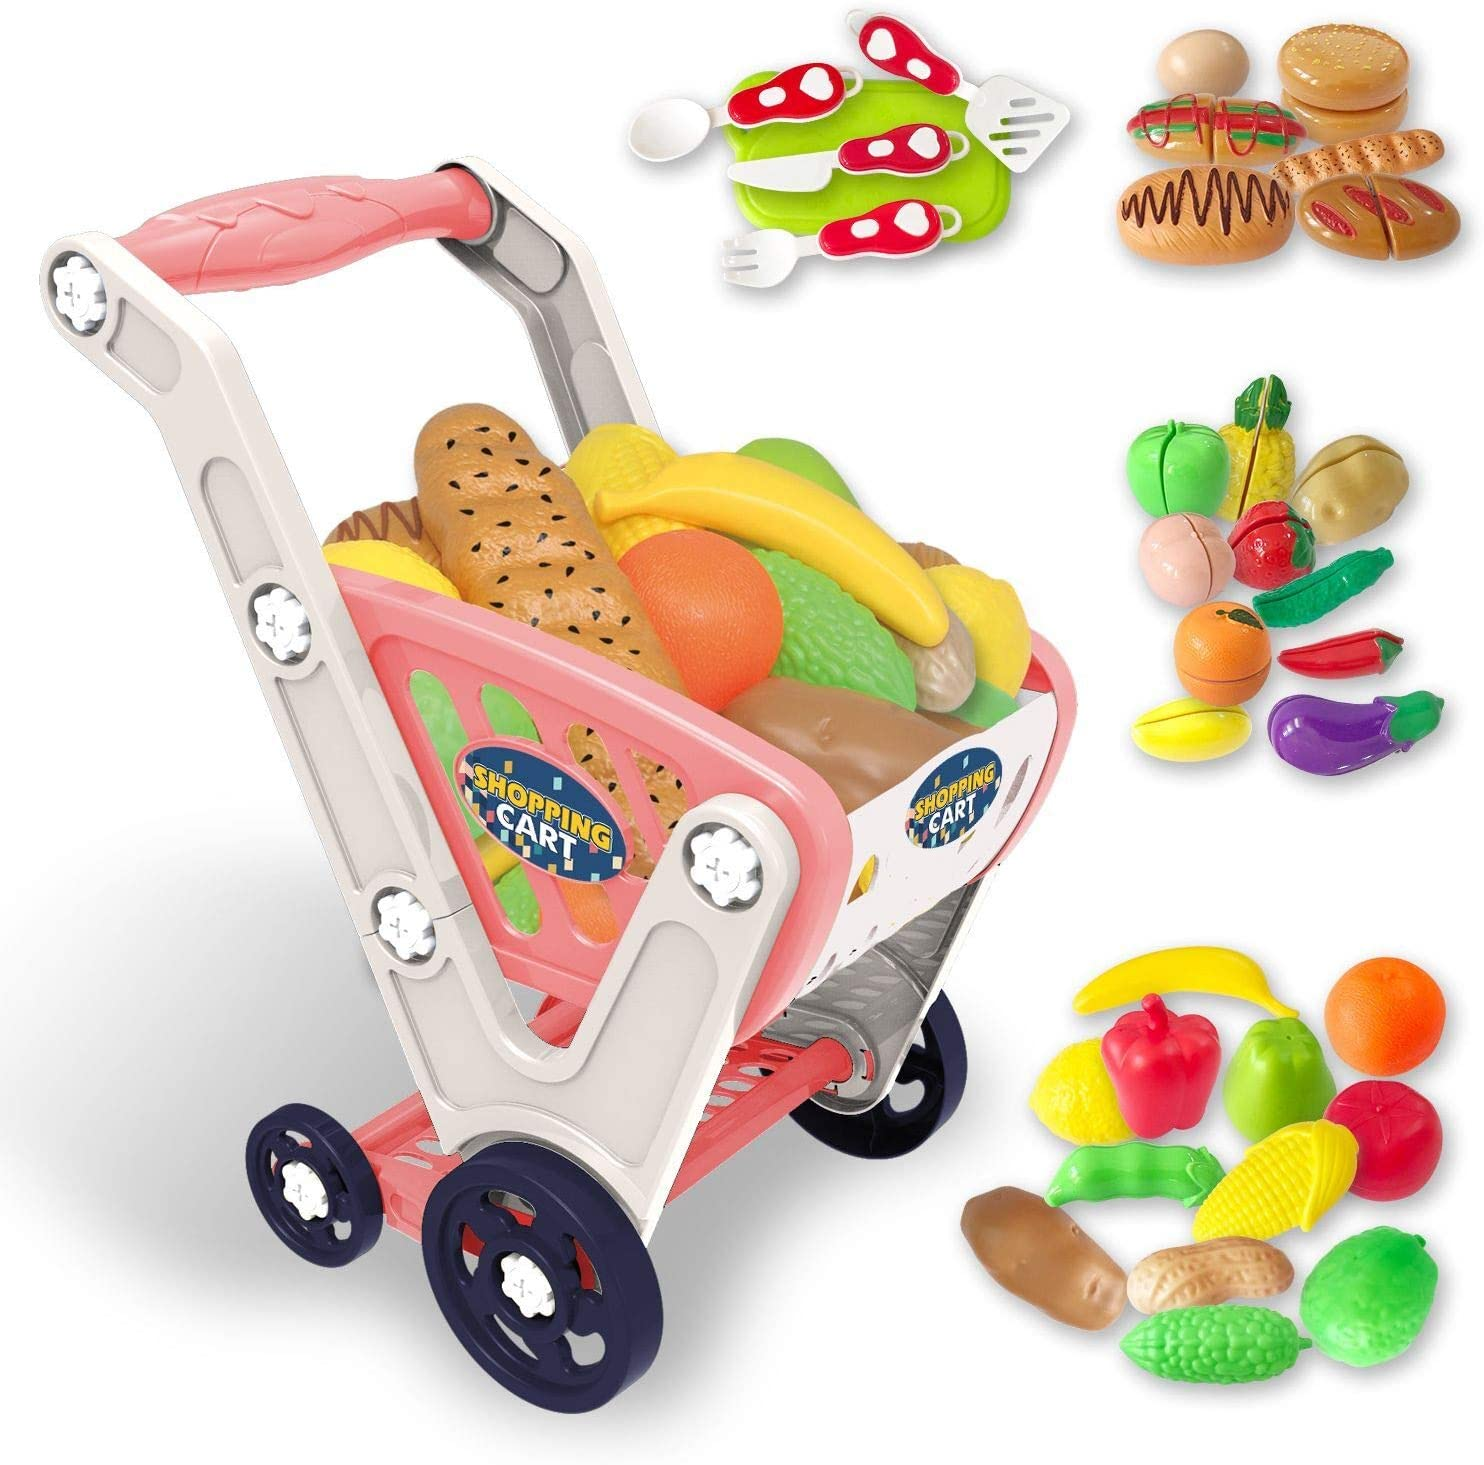 LADUO Large Kids Shopping cart Toy,Childrens Shopping Trolley Basket Toys.33pcs Play Shopping,Kitchen,Food Role Play(23